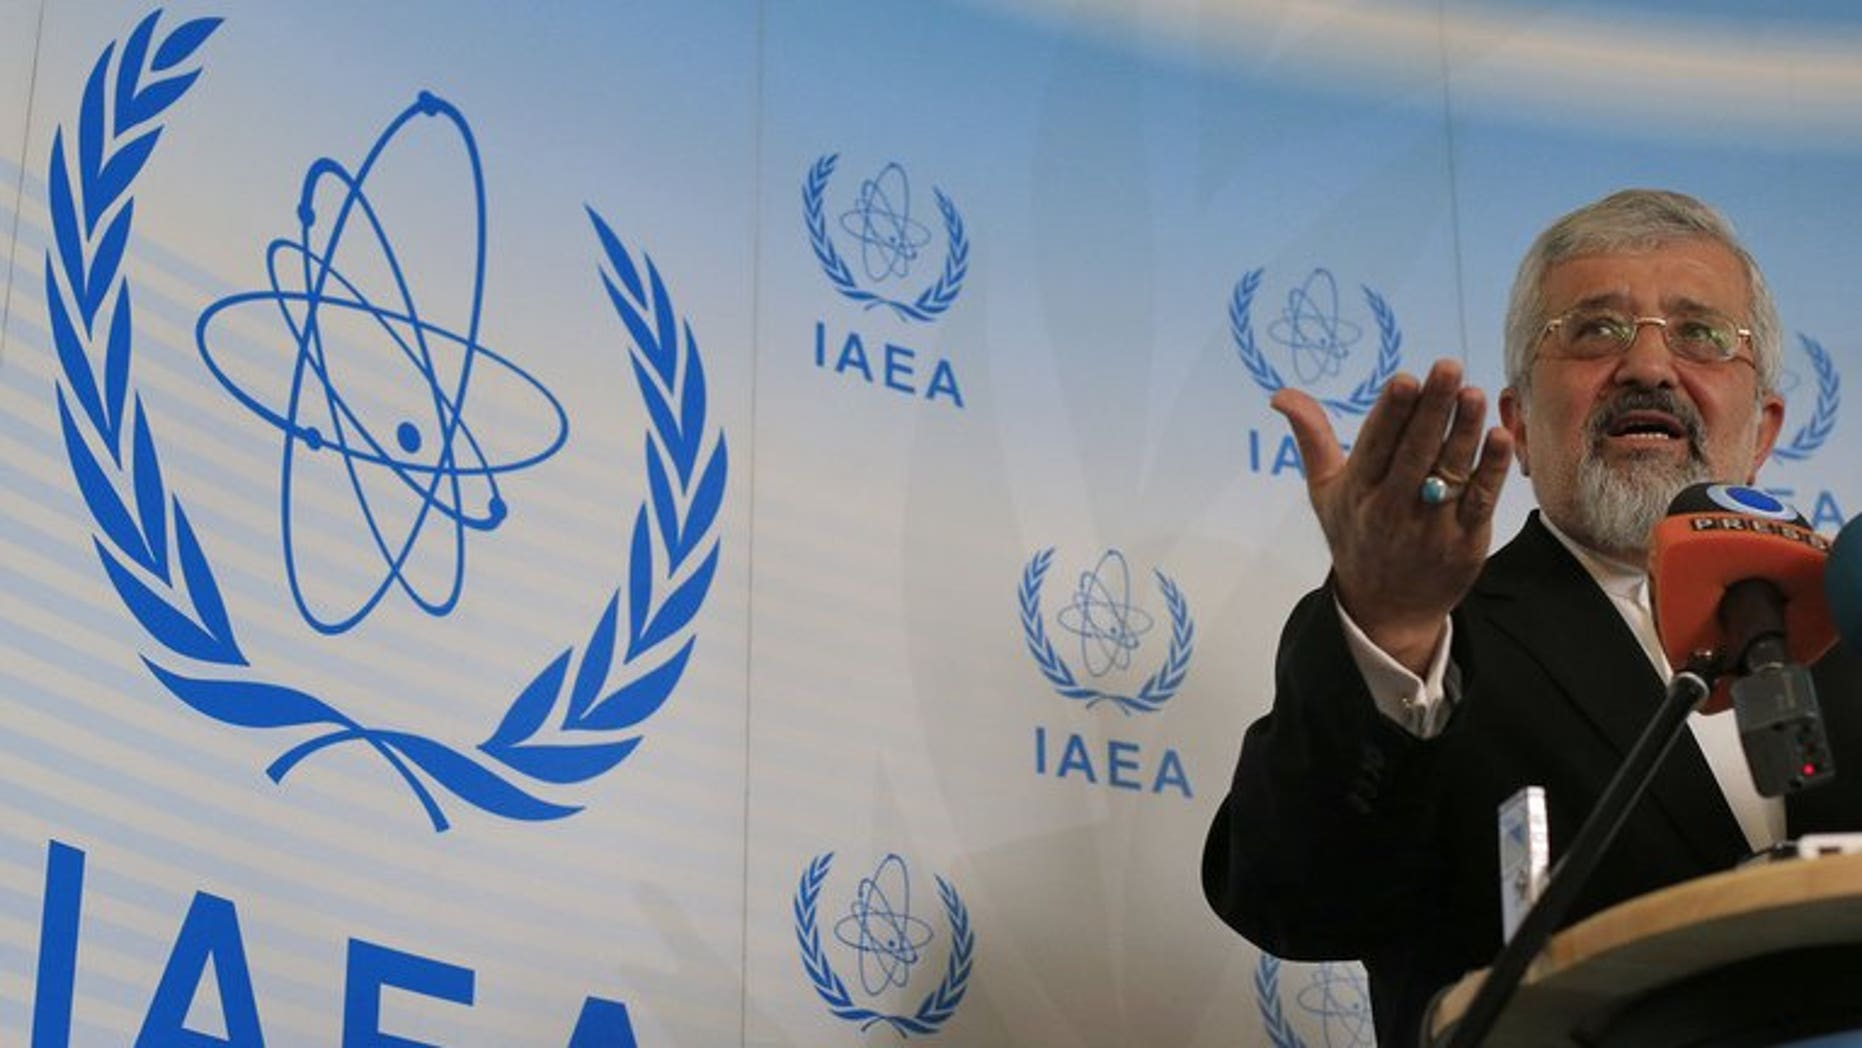 Iran's envoy to the International Atomic Energy Agency (IAEA) Ali Asghar Soltanieh attends a press conference meeting at the UN atomic agency headquarters in Vienna on June 5, 2013. An exiled Iranian opposition group claimed on Thursday to have evidence of a hidden nuclear site located in tunnels beneath a mountain near the town of Damavand, 70 kilometres (44 miles) northeast of Tehran.